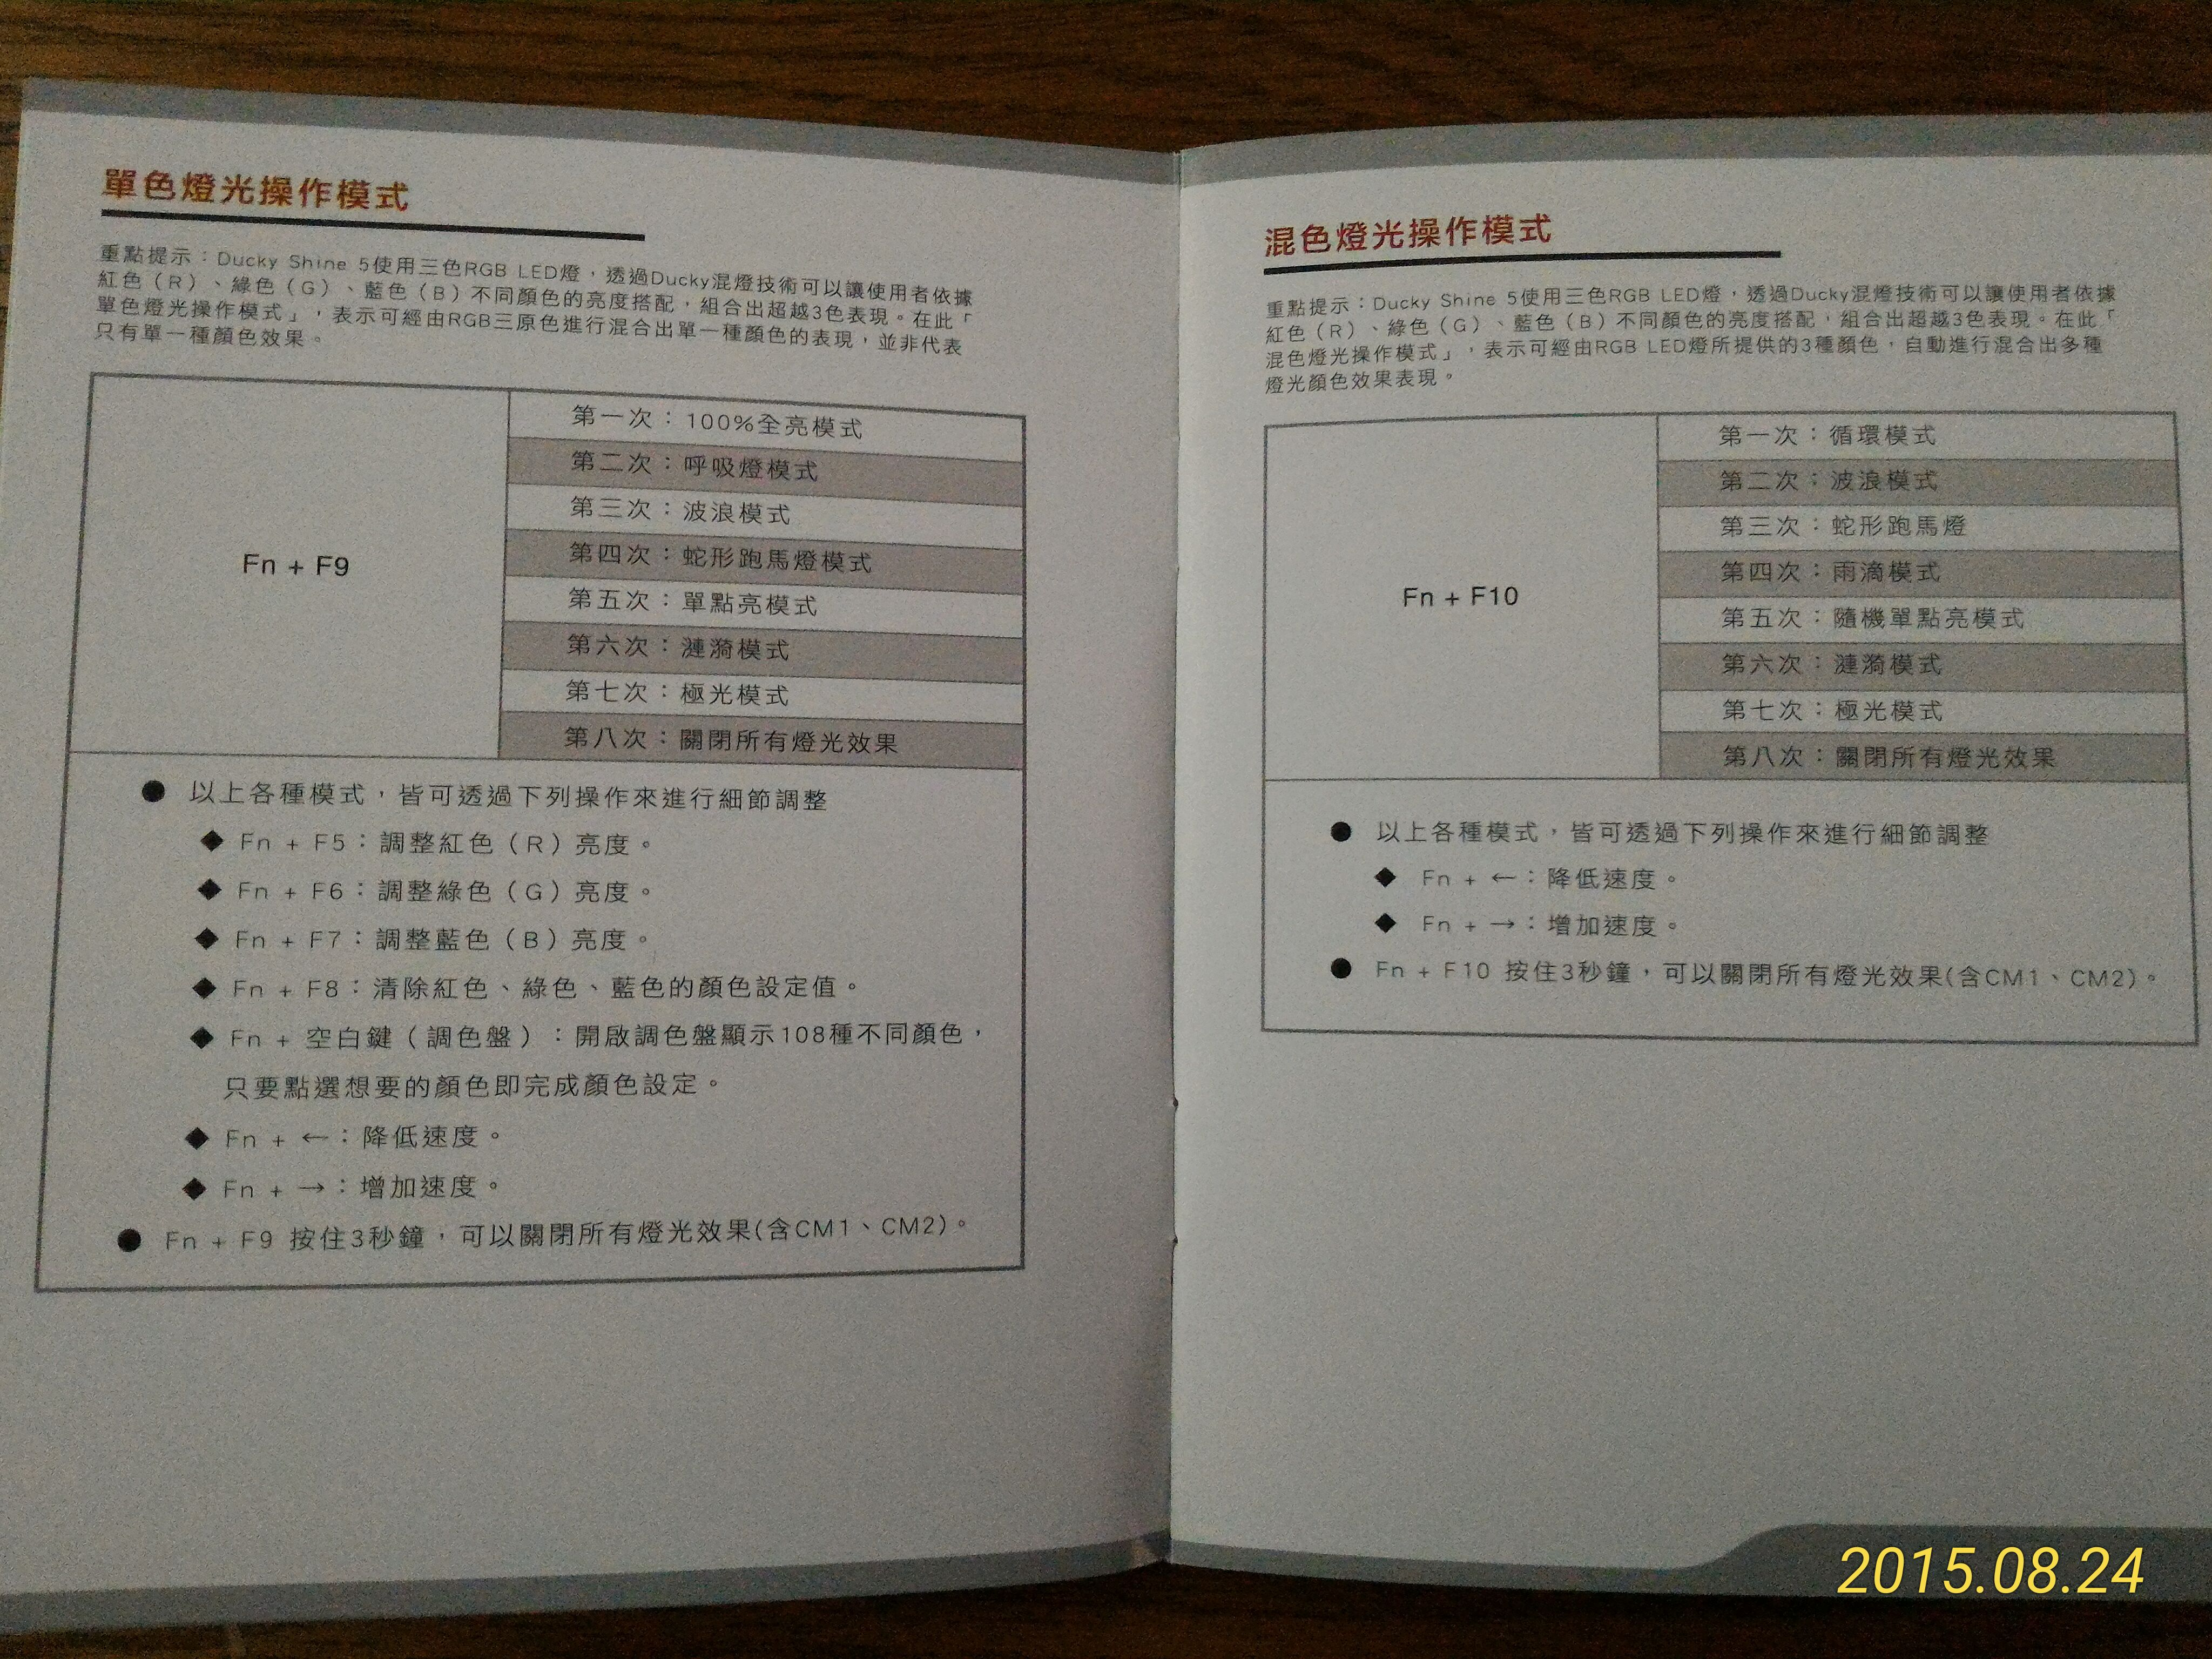 Shine 5 user manual